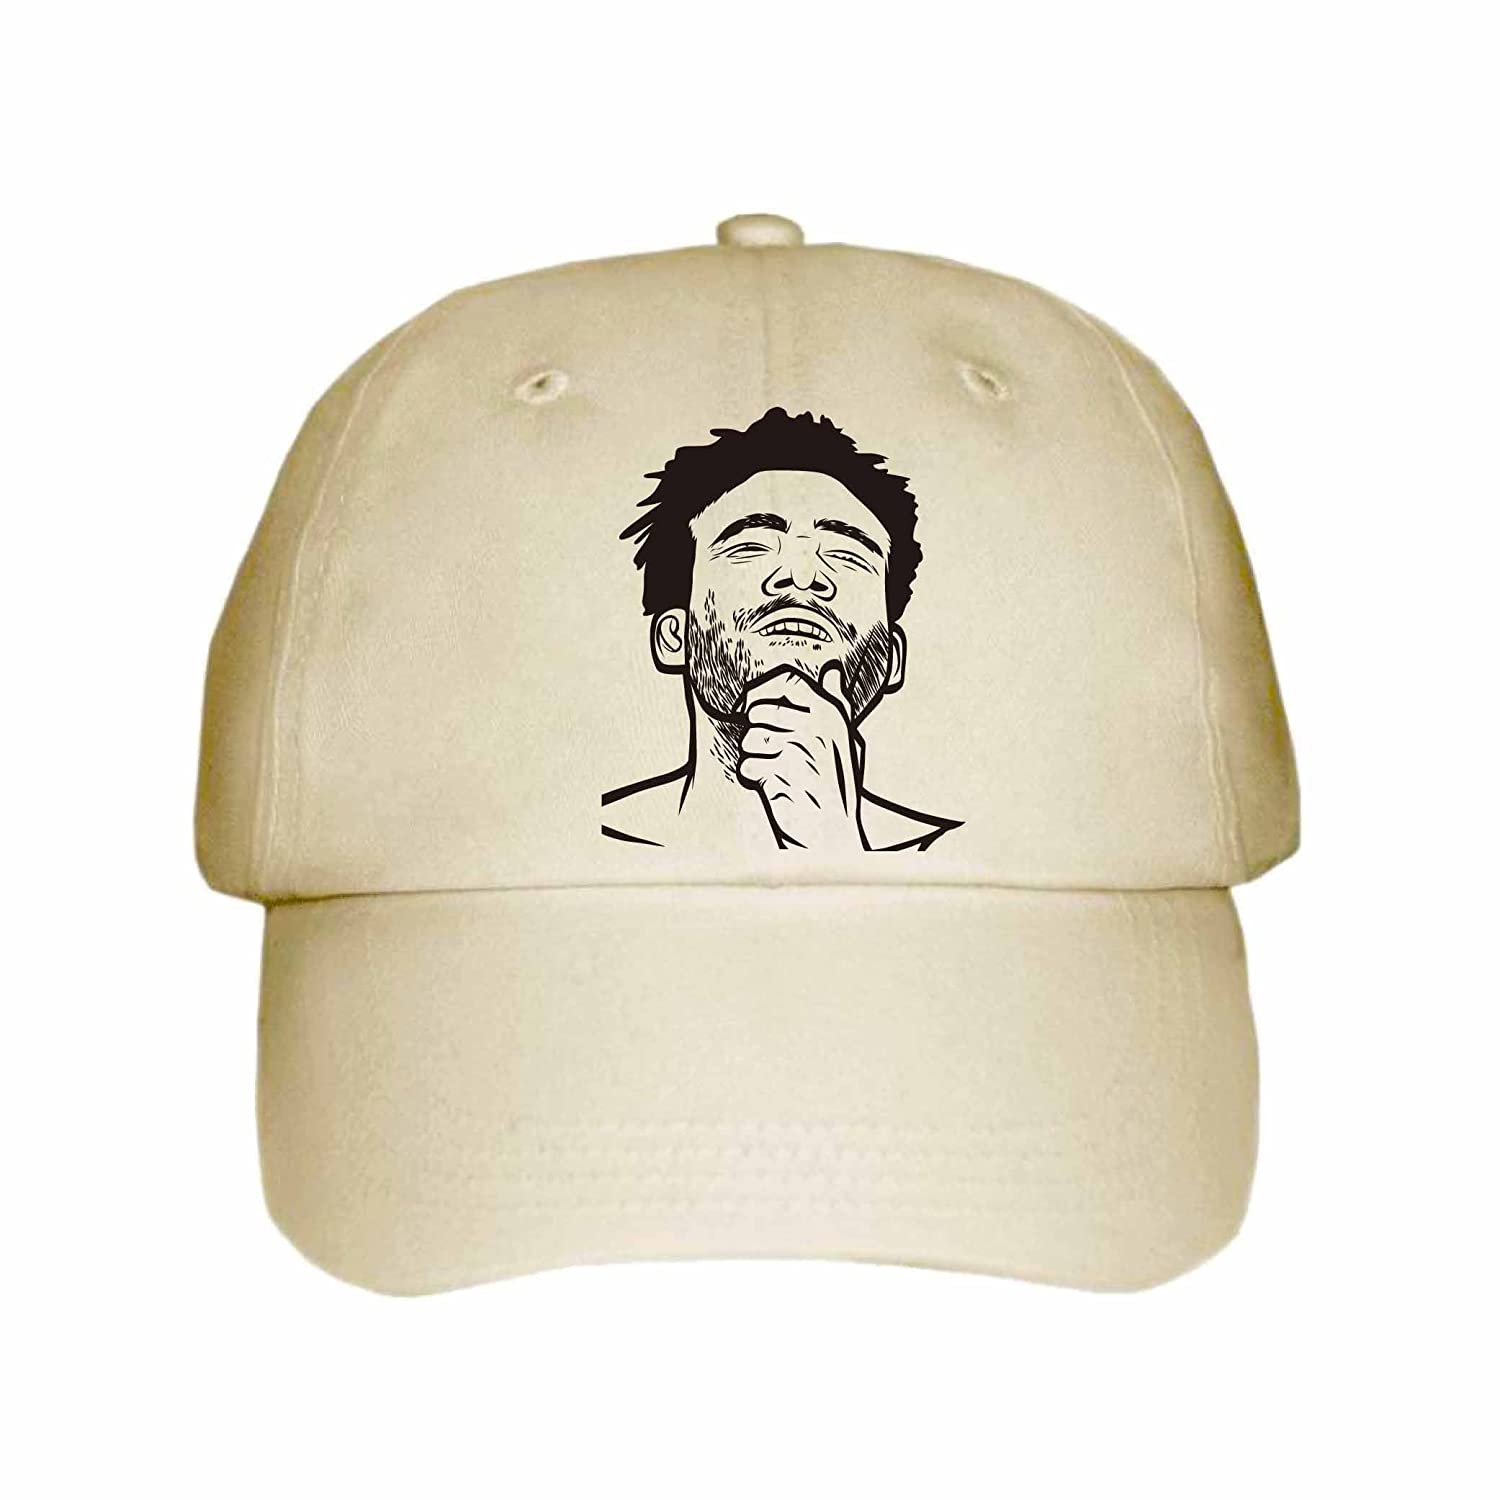 Childish Gambino Donald Glover Cap/Hat (Unisex) Babes & Gents